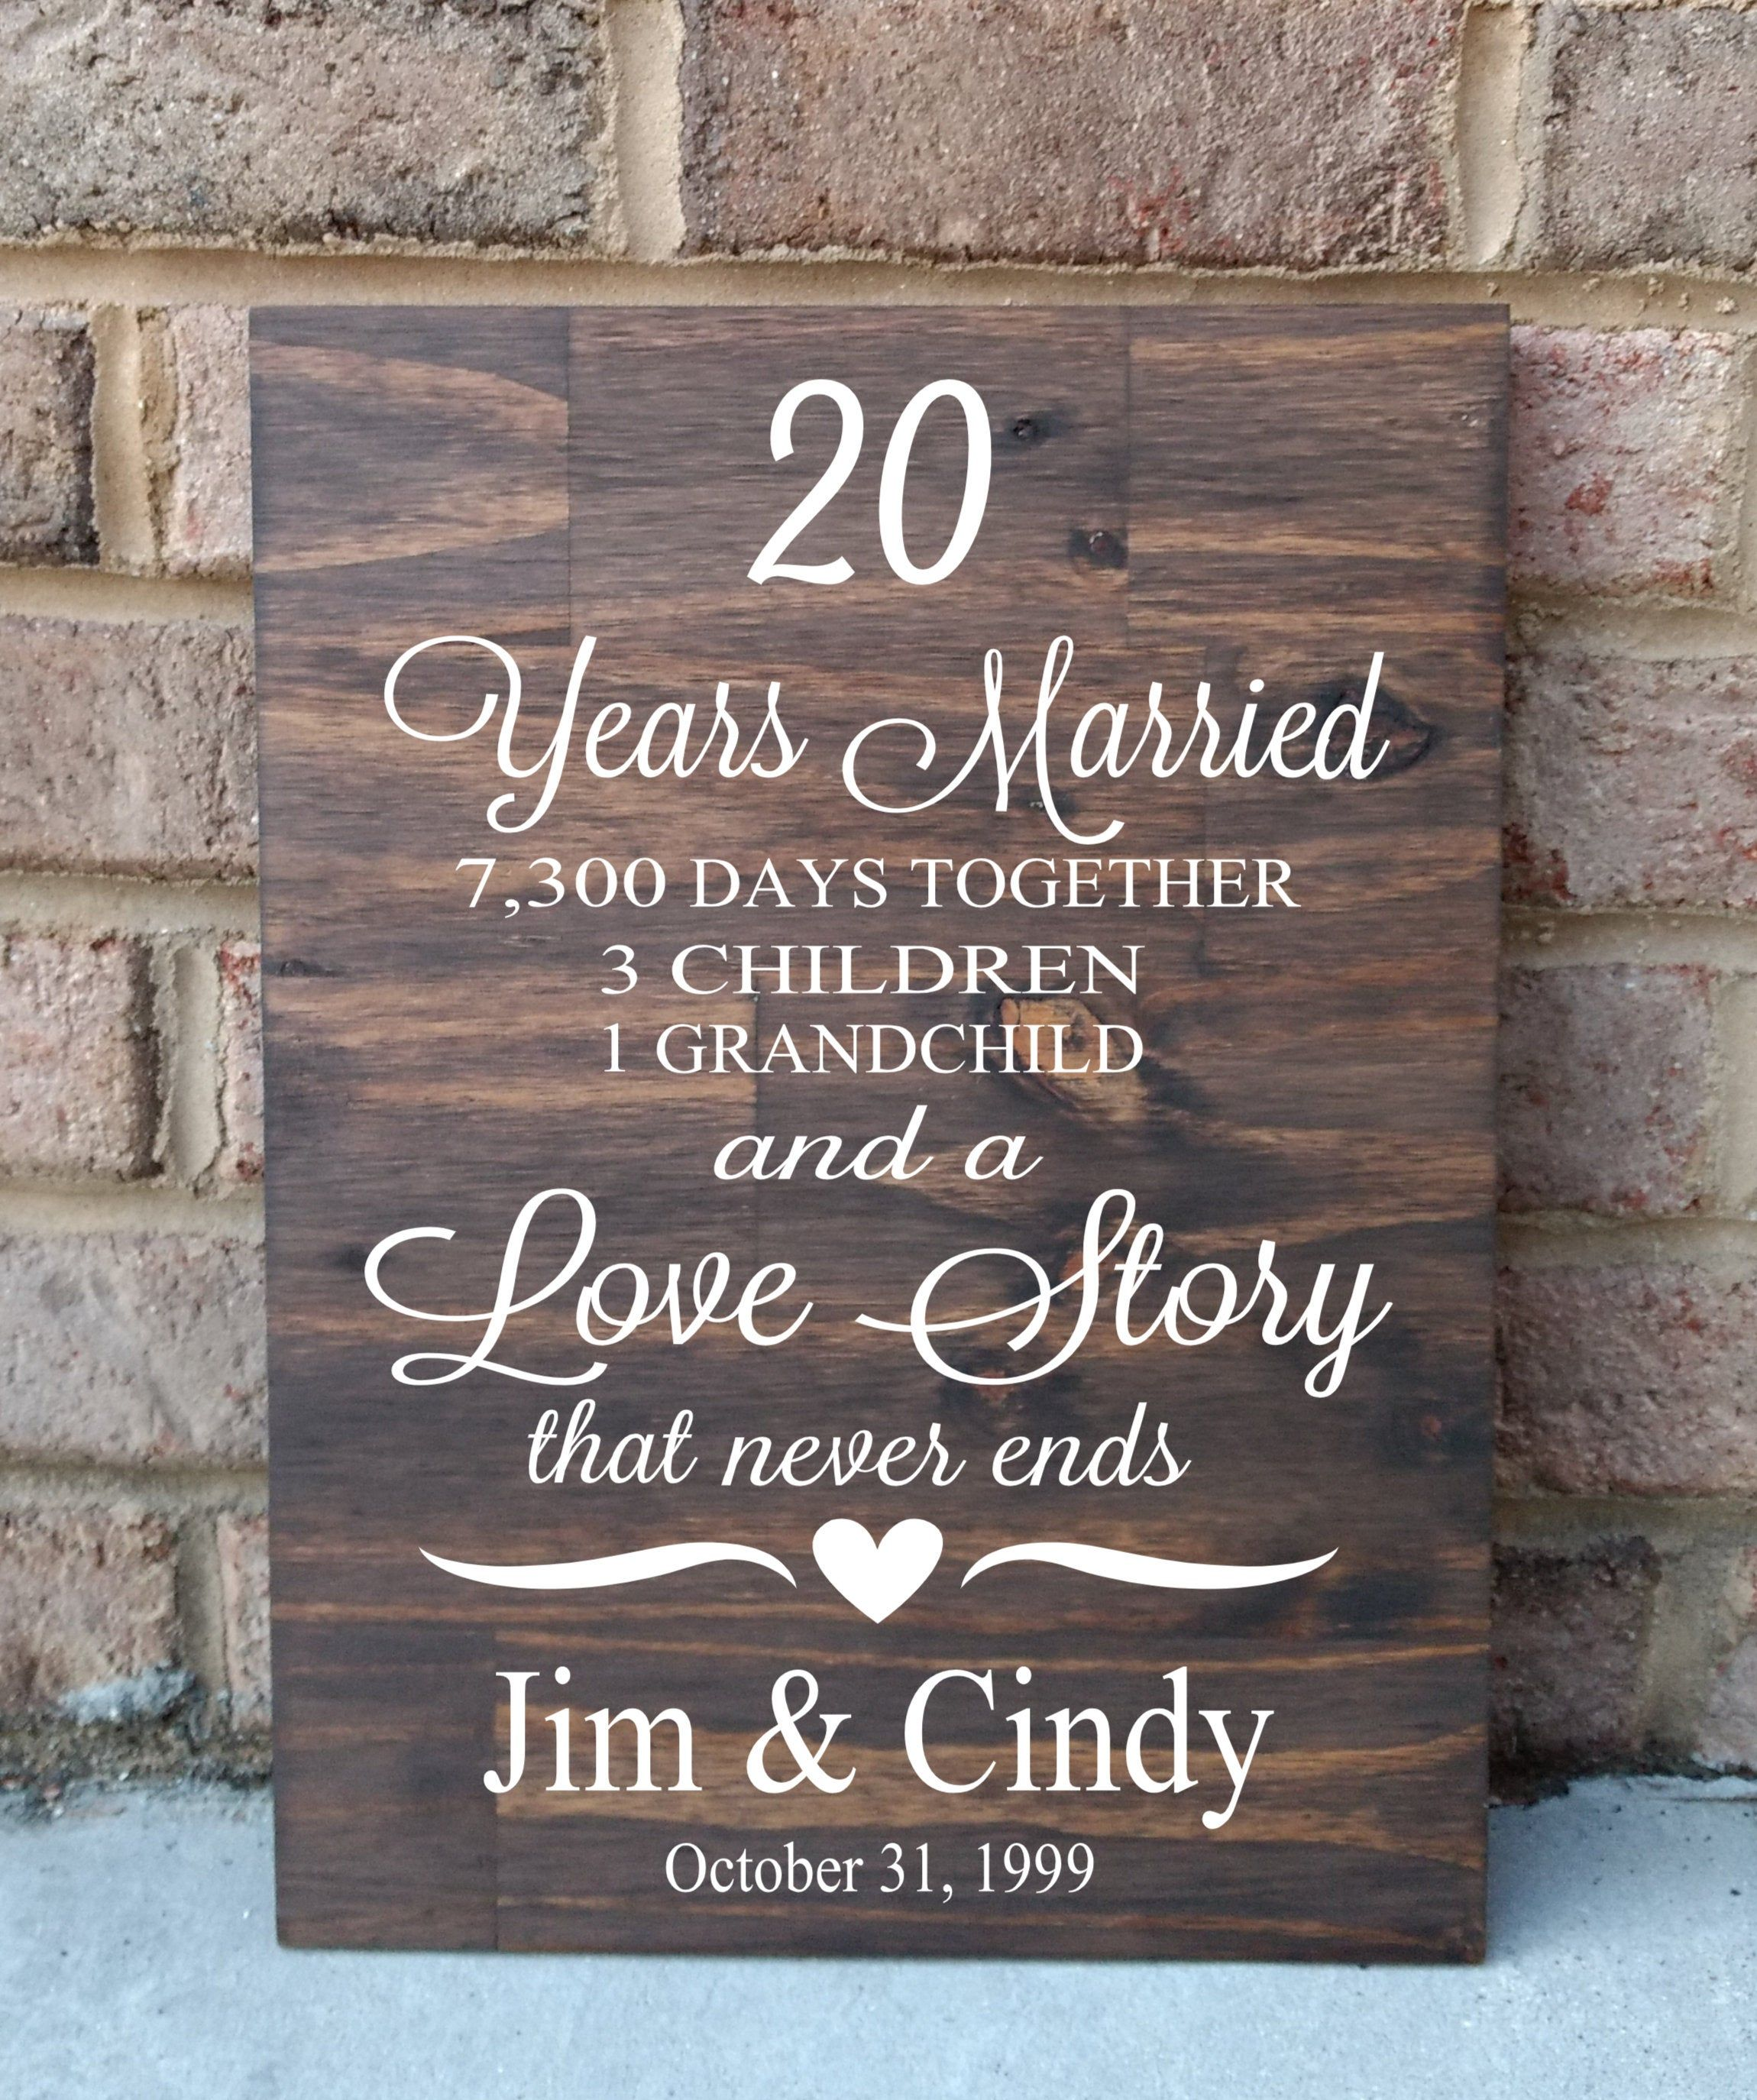 20 Years Of Marriage Hand Painted Wood Sign 20th Anniversary Etsy In 2020 40th Anniversary Gifts 20th Anniversary Gifts 30th Anniversary Gifts